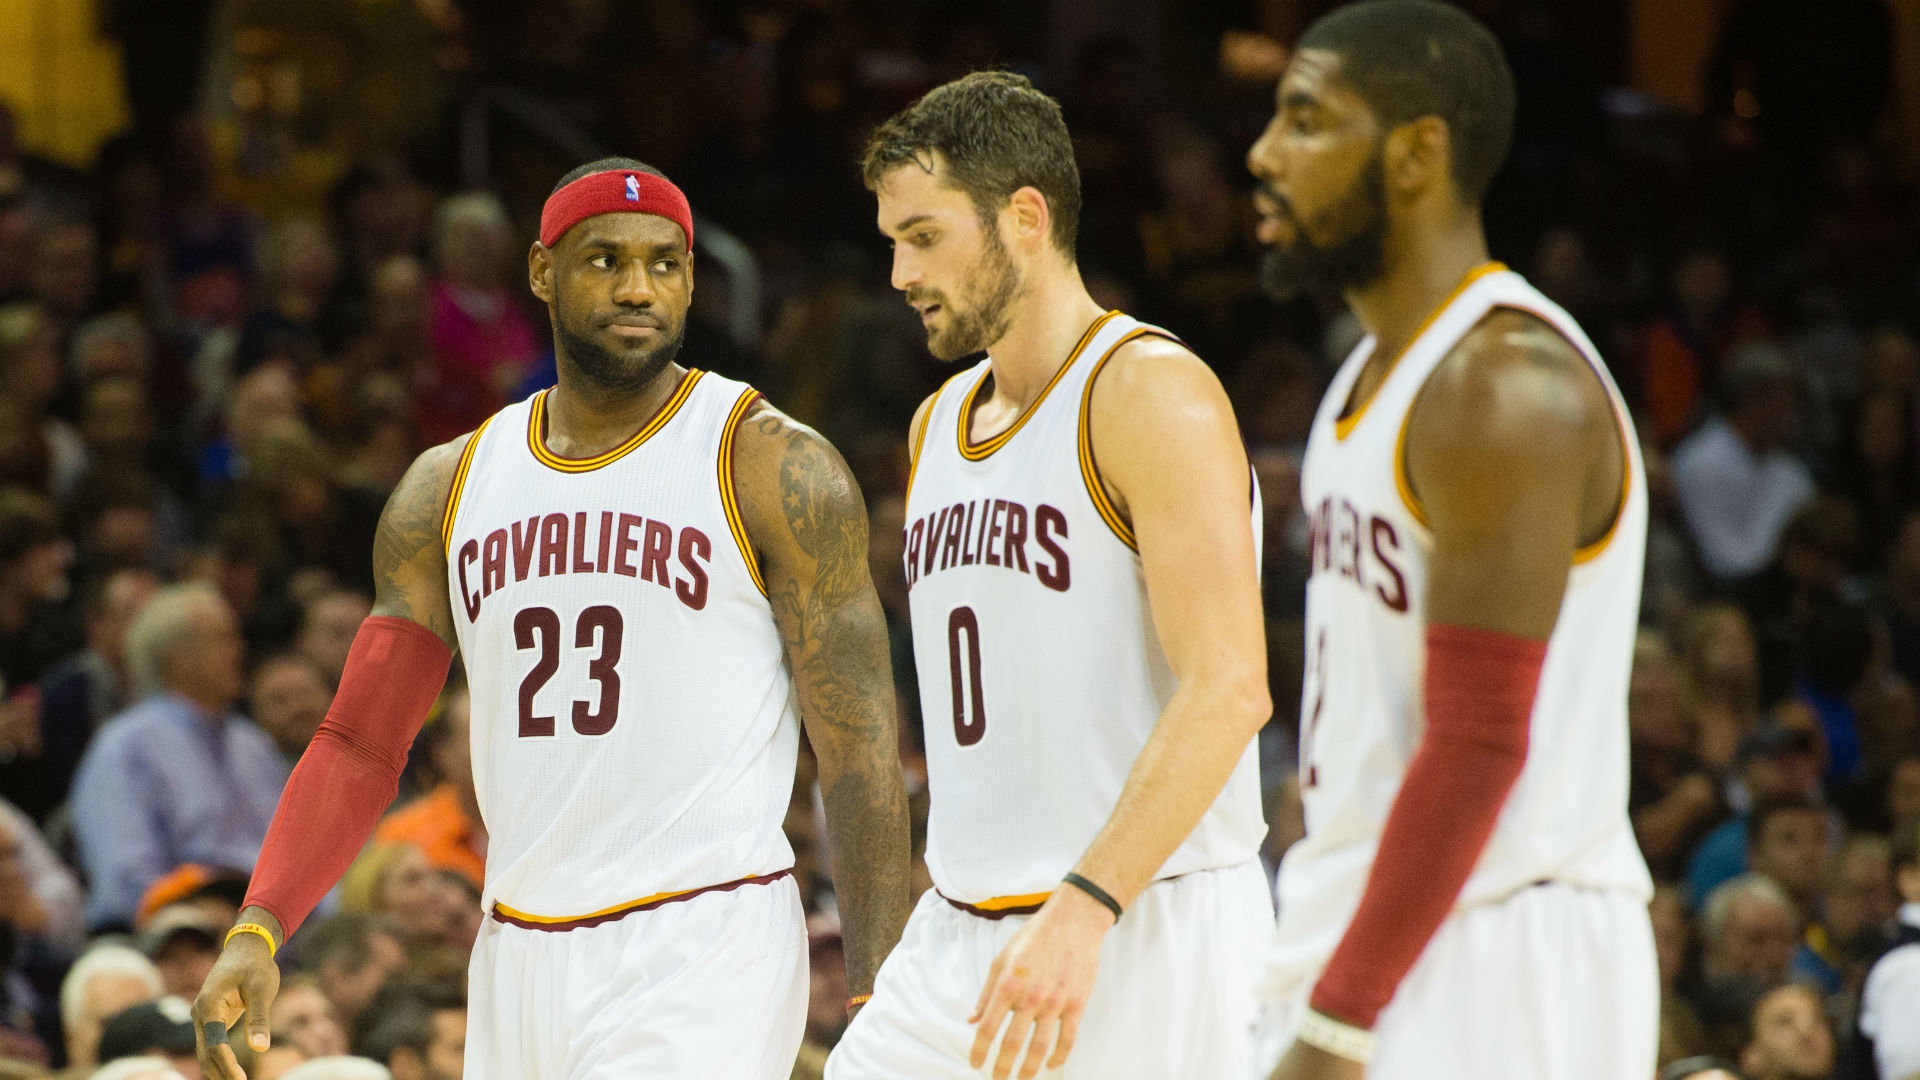 LeBron James concerned with Cavs' lack of playoff experience